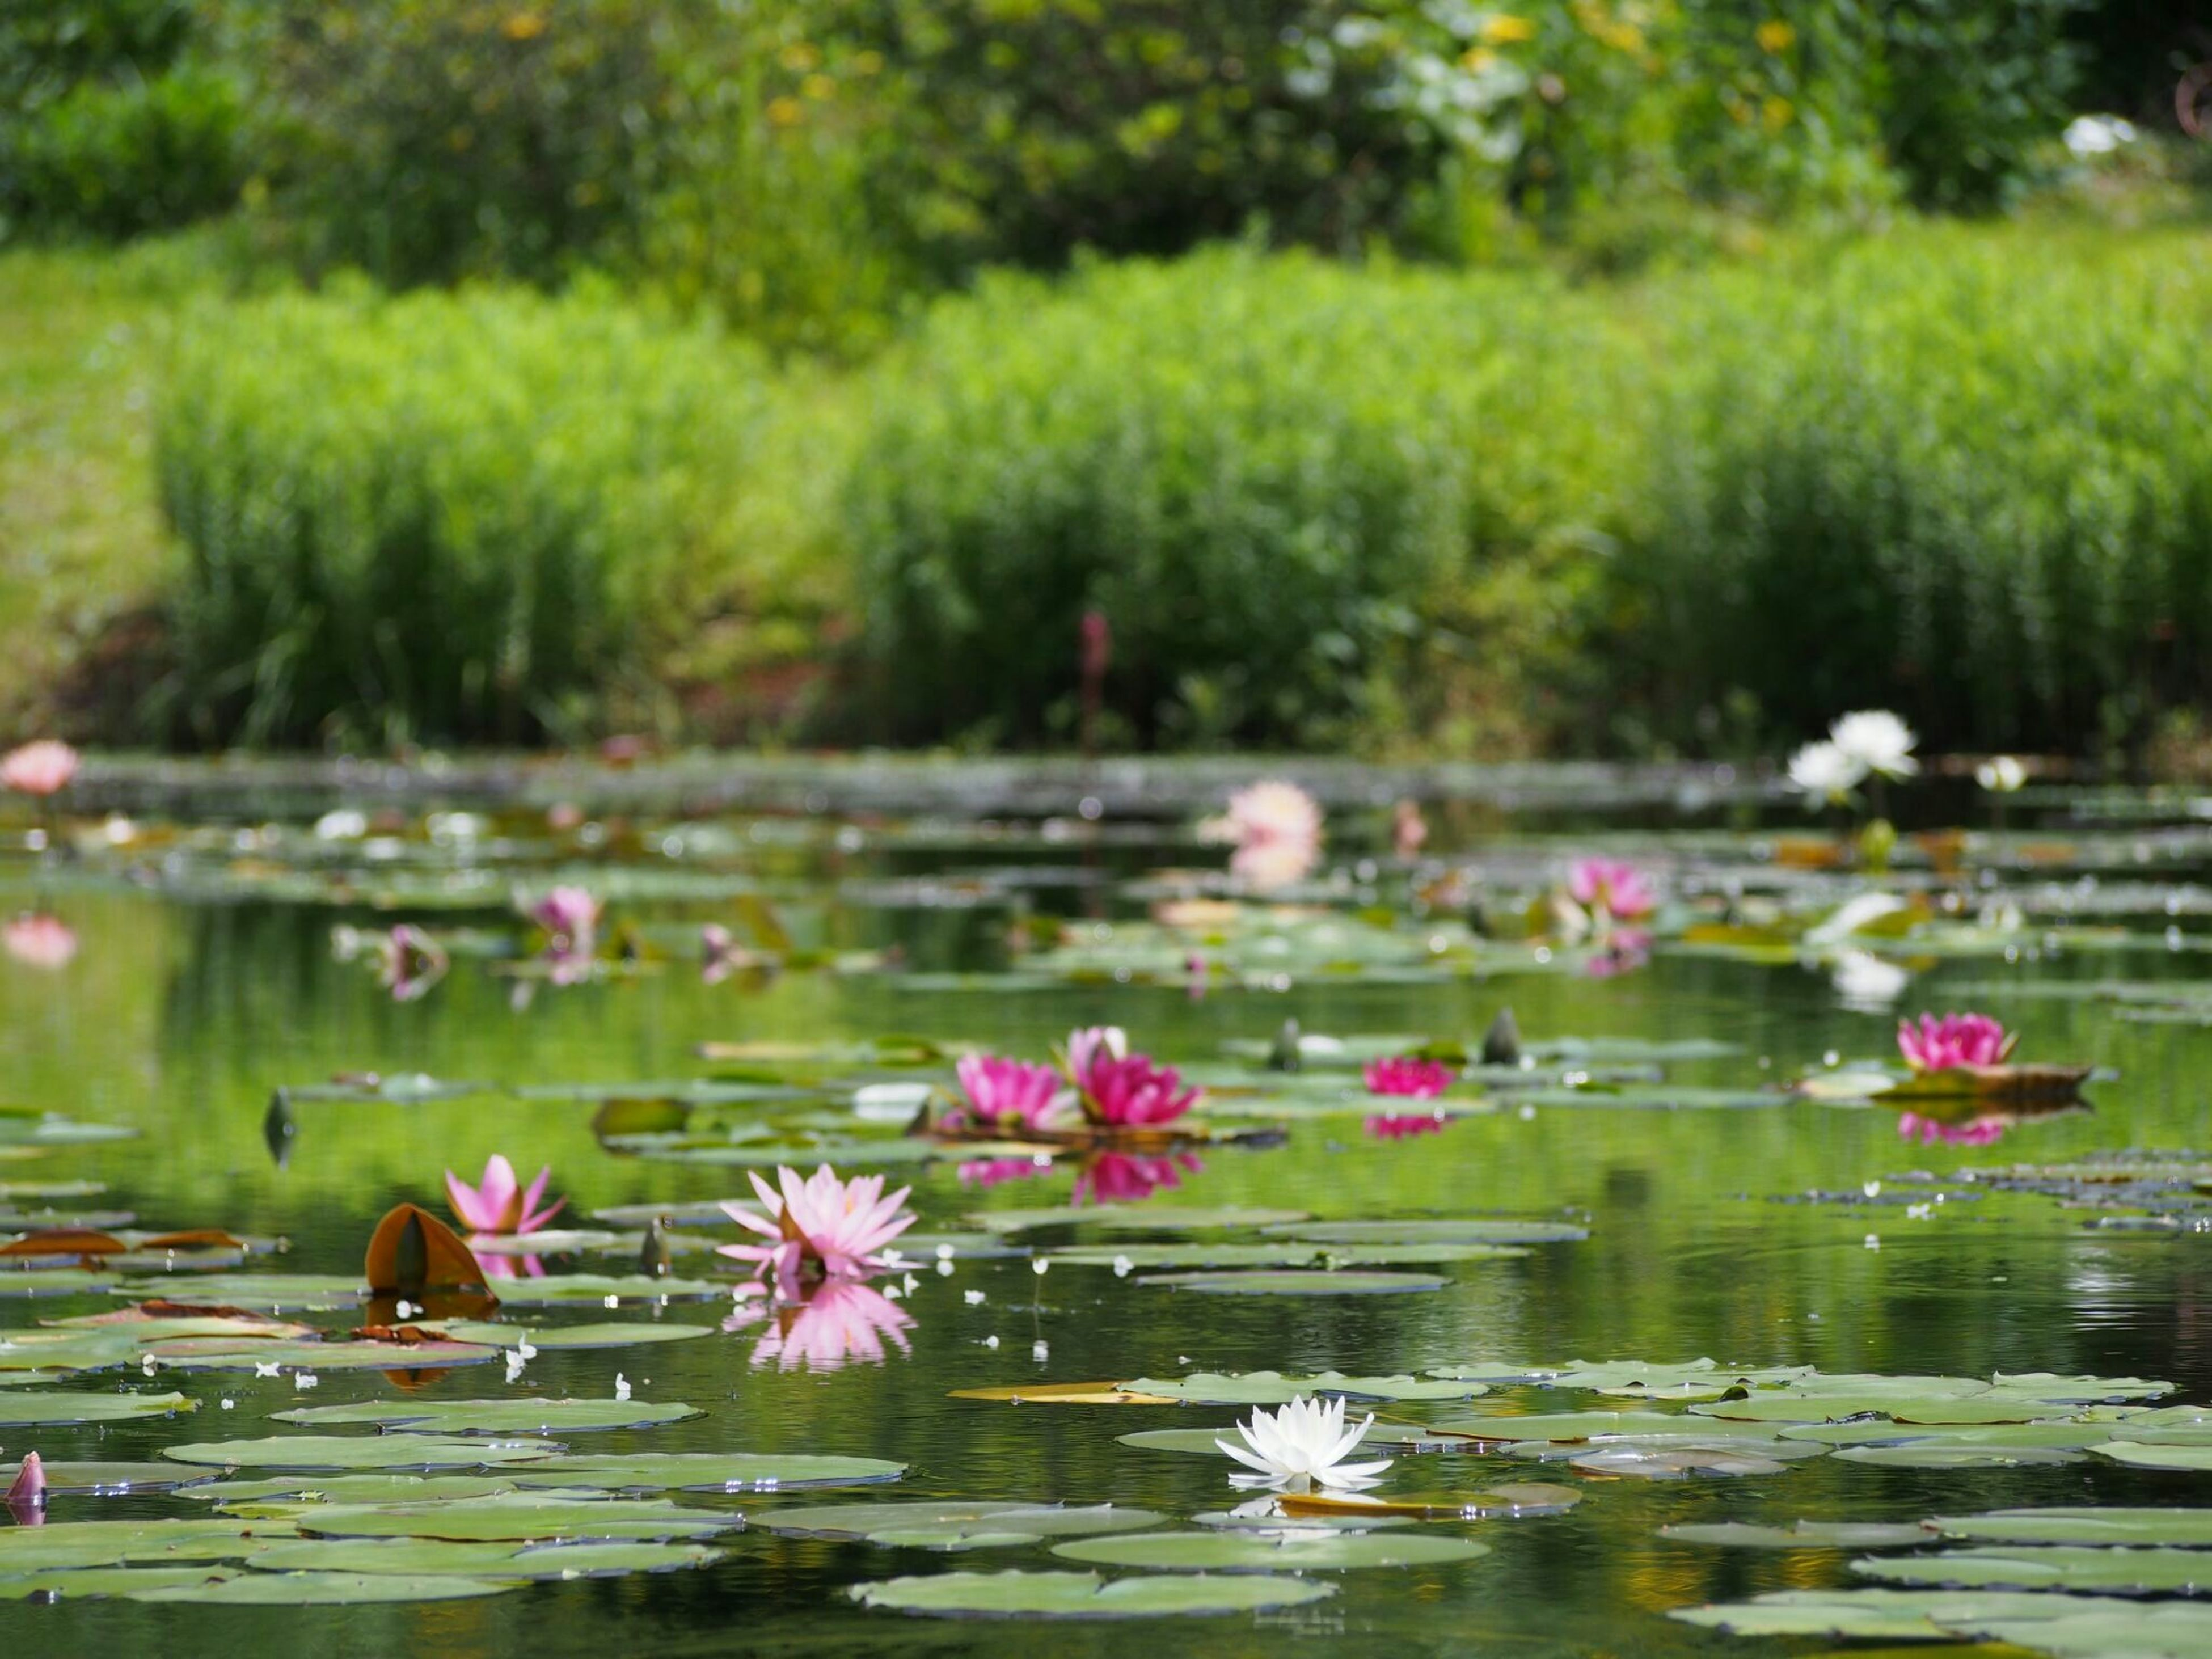 flower, water, freshness, growth, beauty in nature, lake, plant, pond, fragility, nature, petal, blooming, water lily, pink color, green color, tranquility, focus on foreground, floating on water, day, outdoors, in bloom, stem, blossom, no people, flower head, tranquil scene, growing, selective focus, scenics, close-up